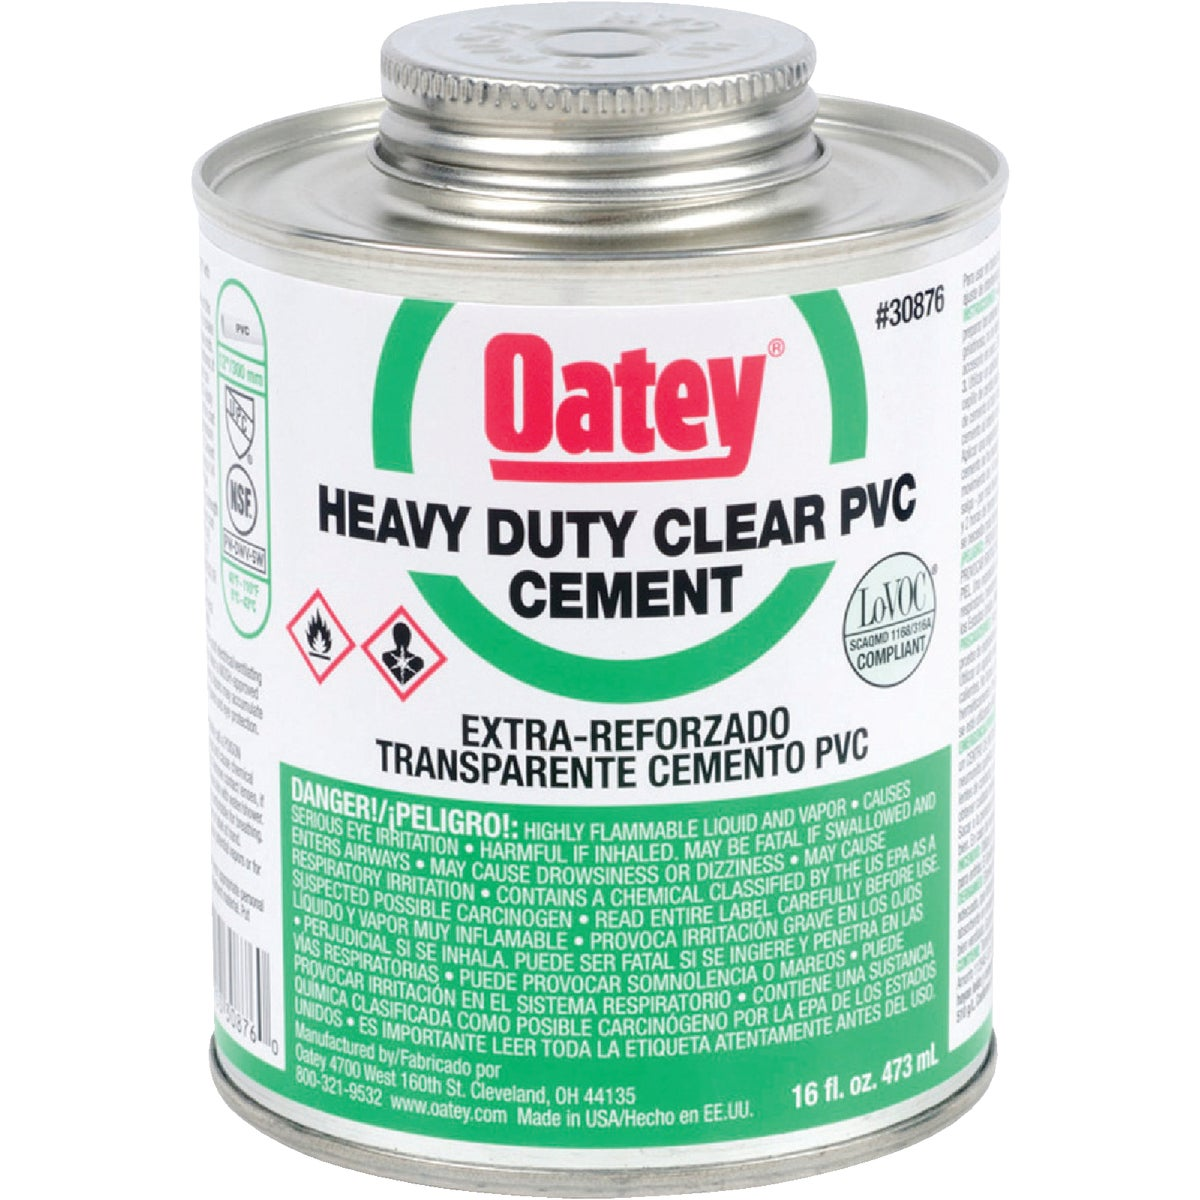 PINT H/DUTY PVC CEMENT - 30876 by Oatey Scs